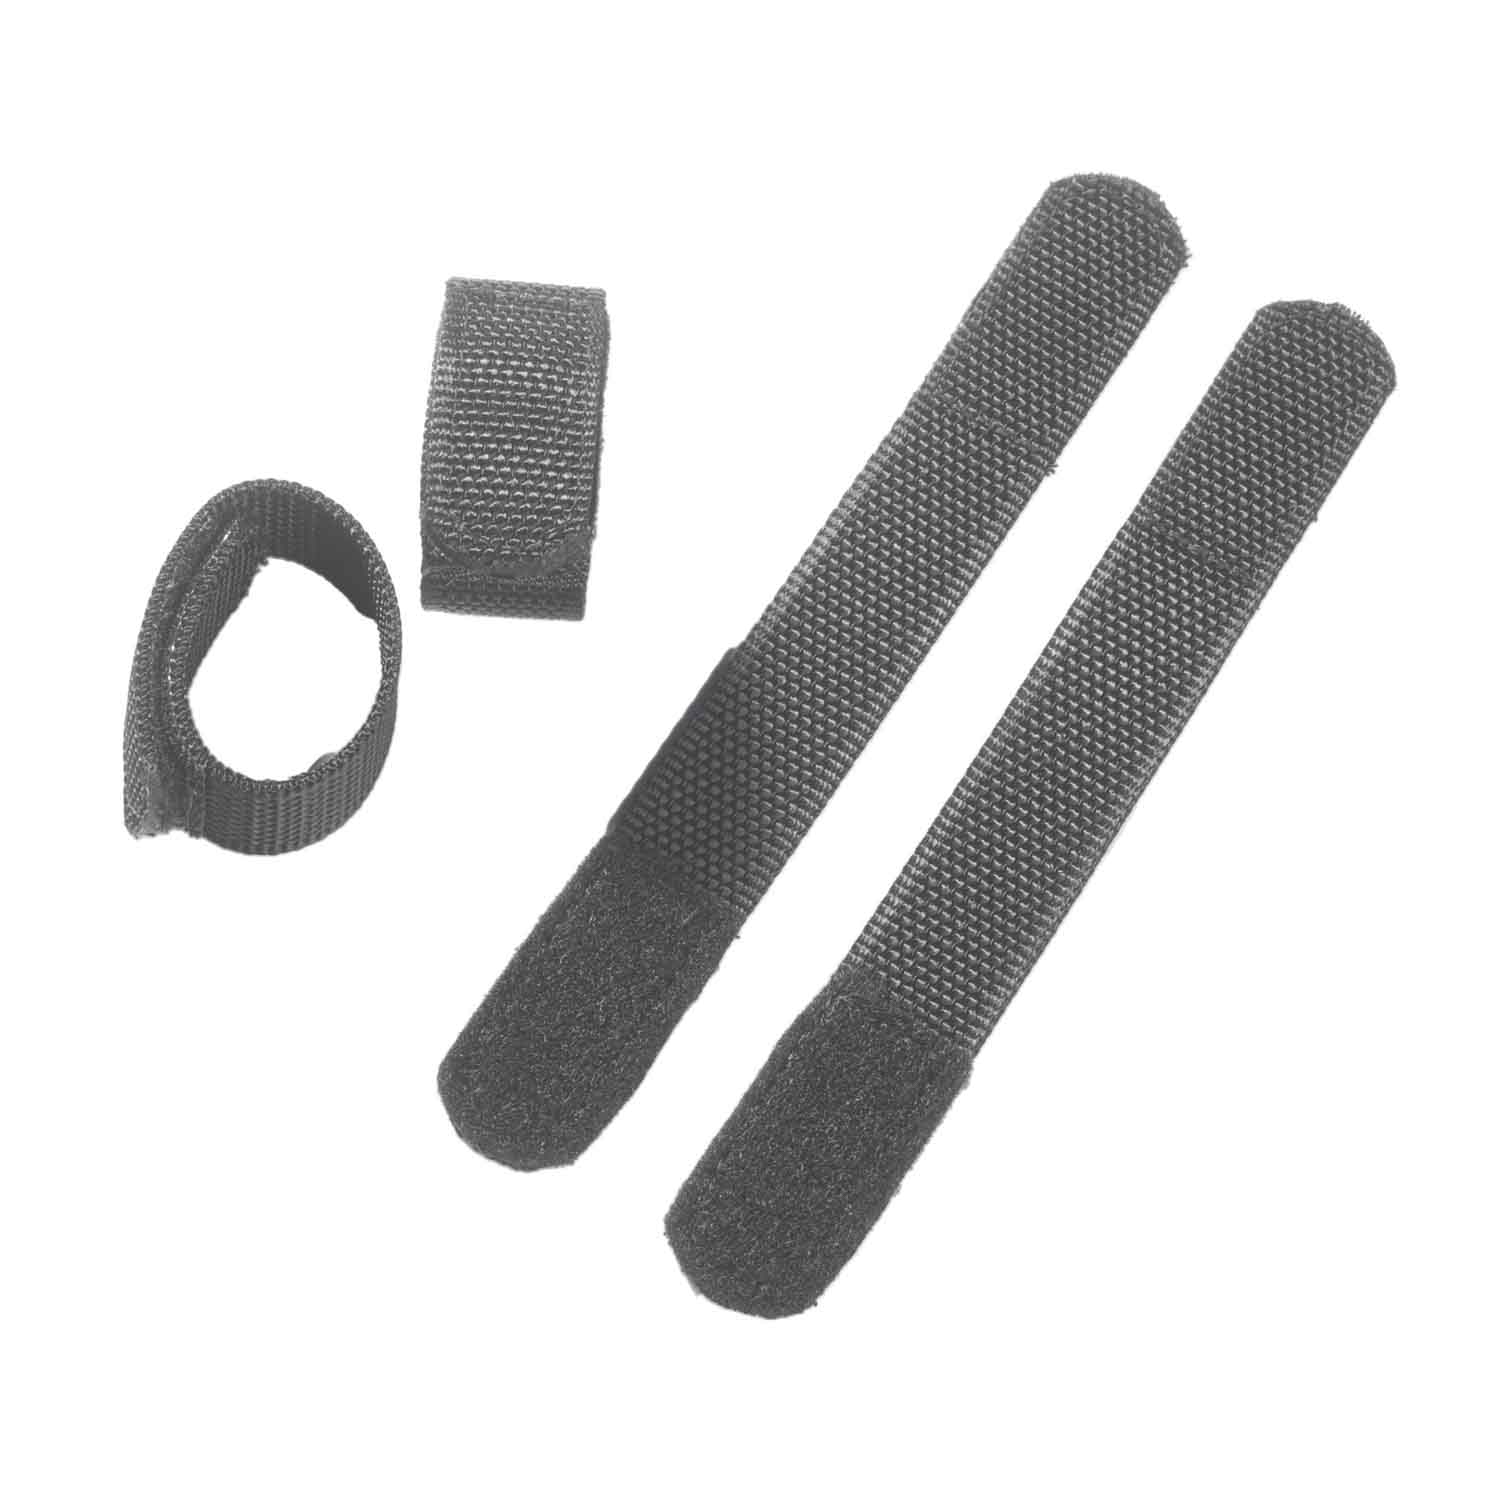 Bianchi Accumold Ranger Belt Keepers 4 Pack